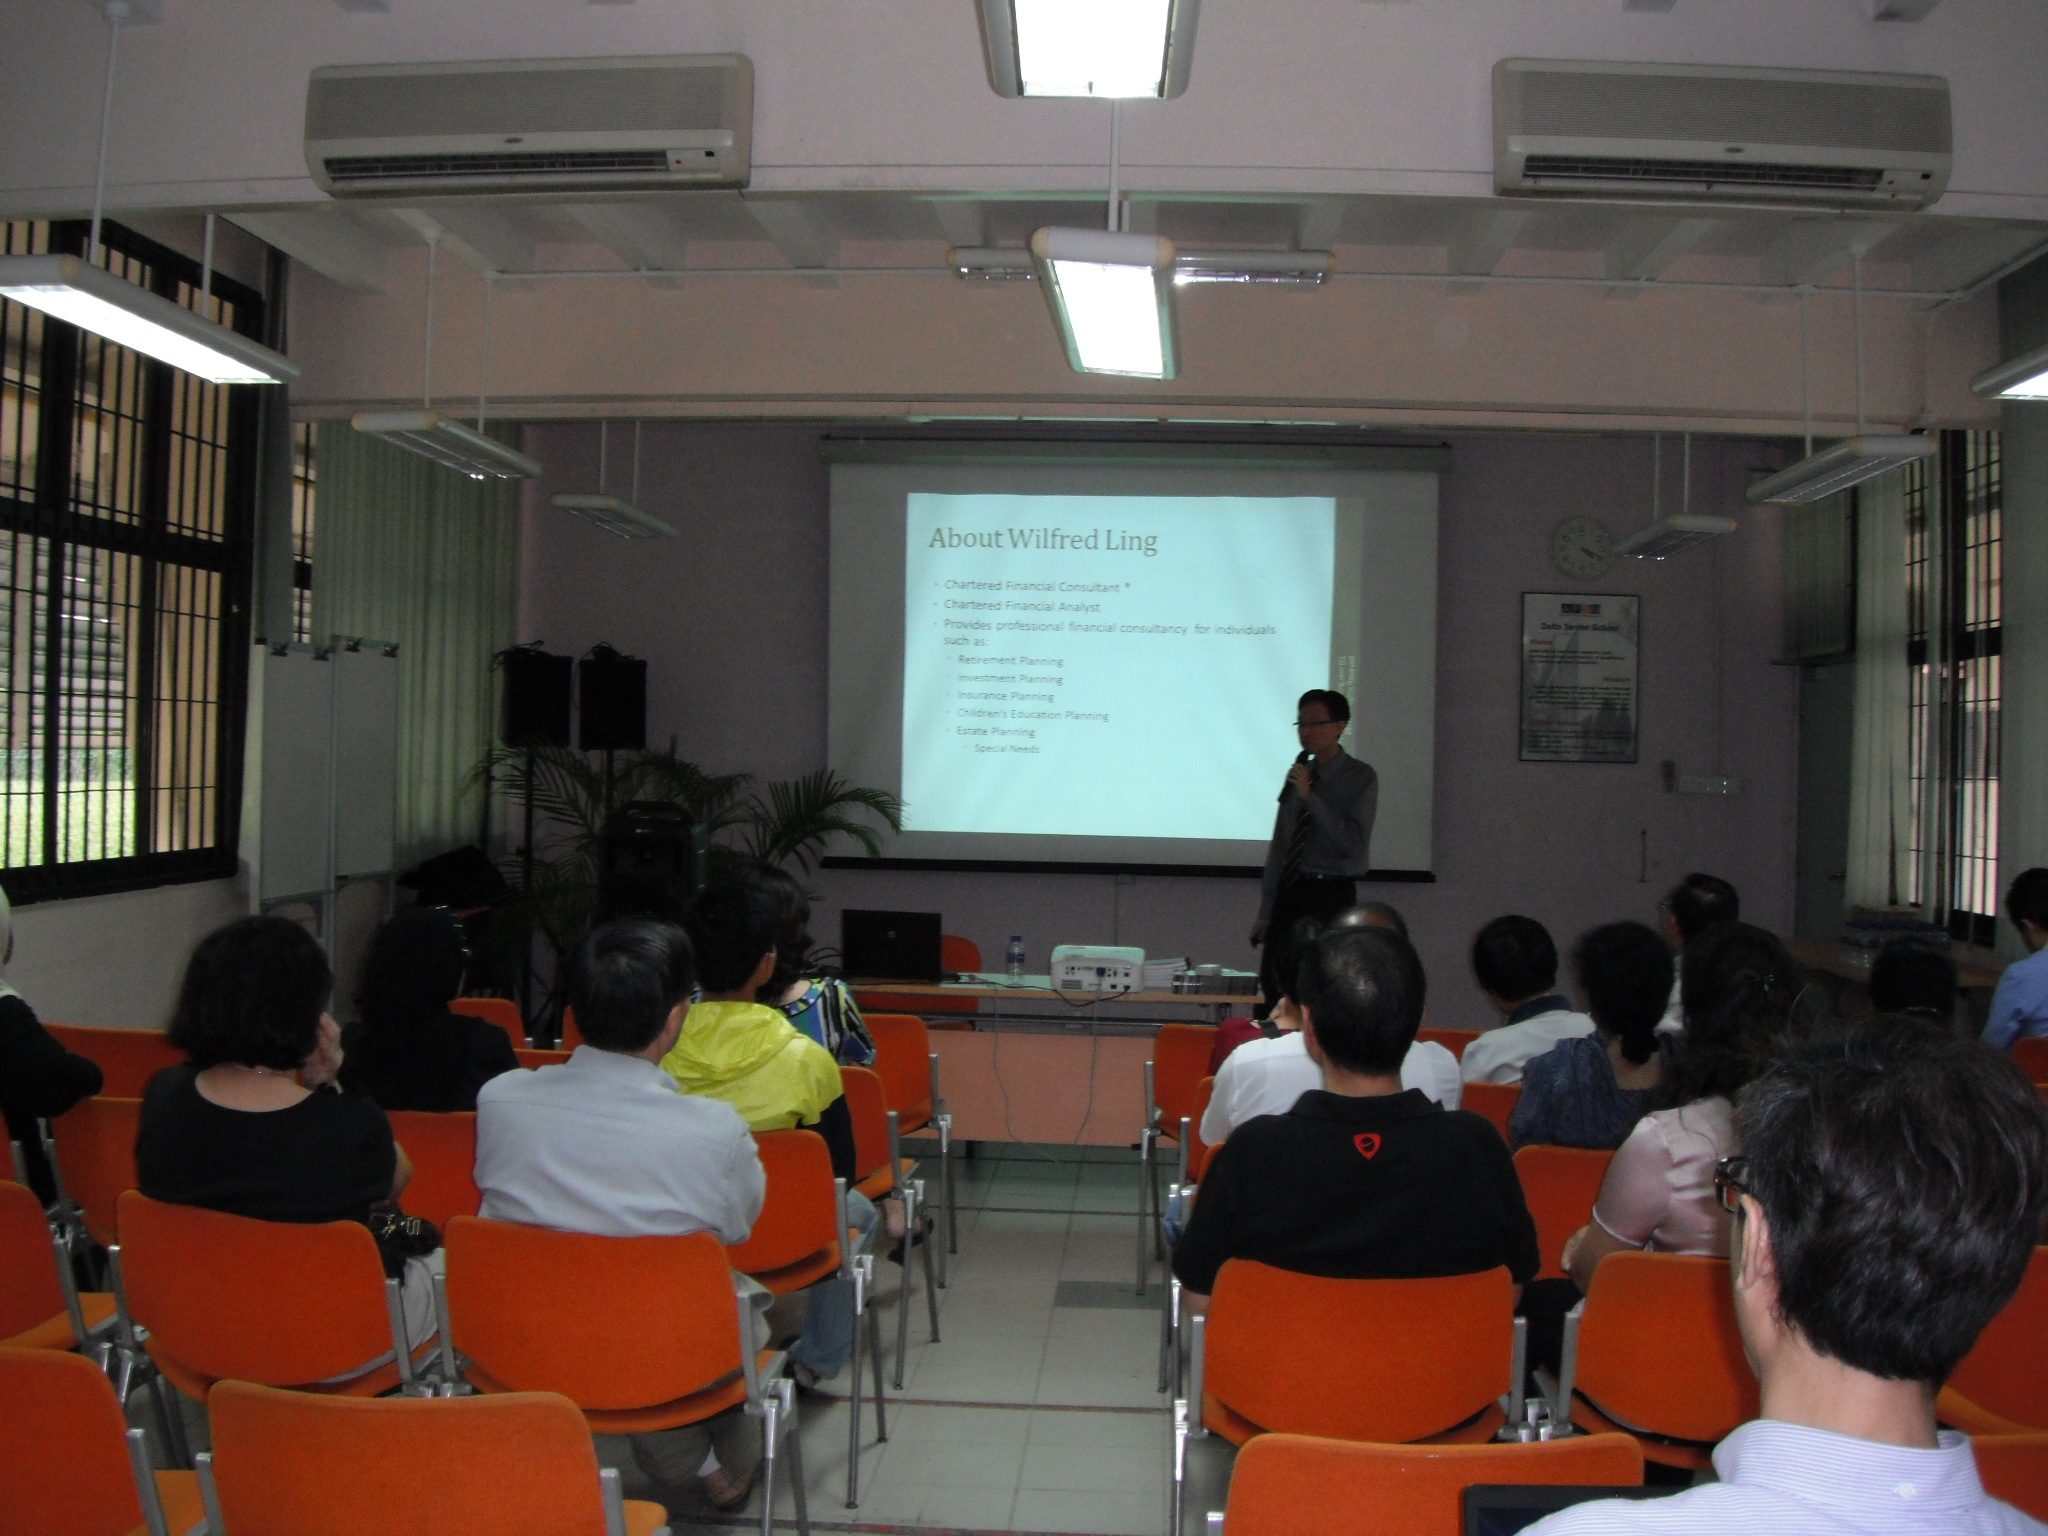 Wilfred Ling giving a talk